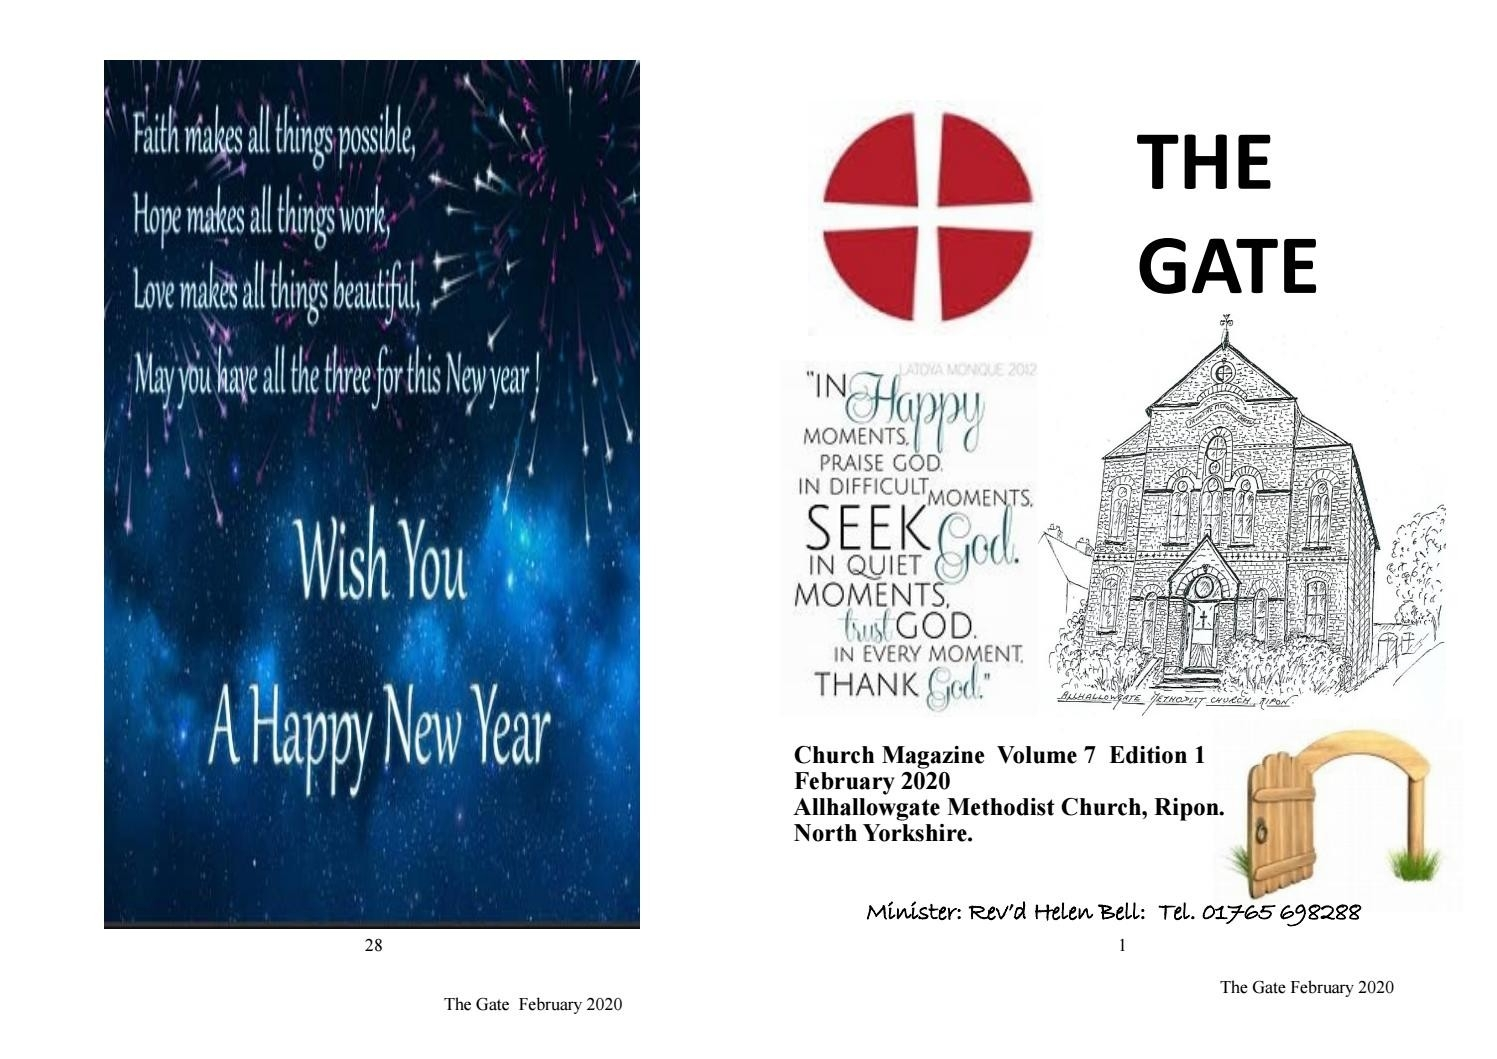 The Gate February 2020Allhallowgatechurchhalls - Issuu  United Methodist Lectionary Readings For February 9 2020